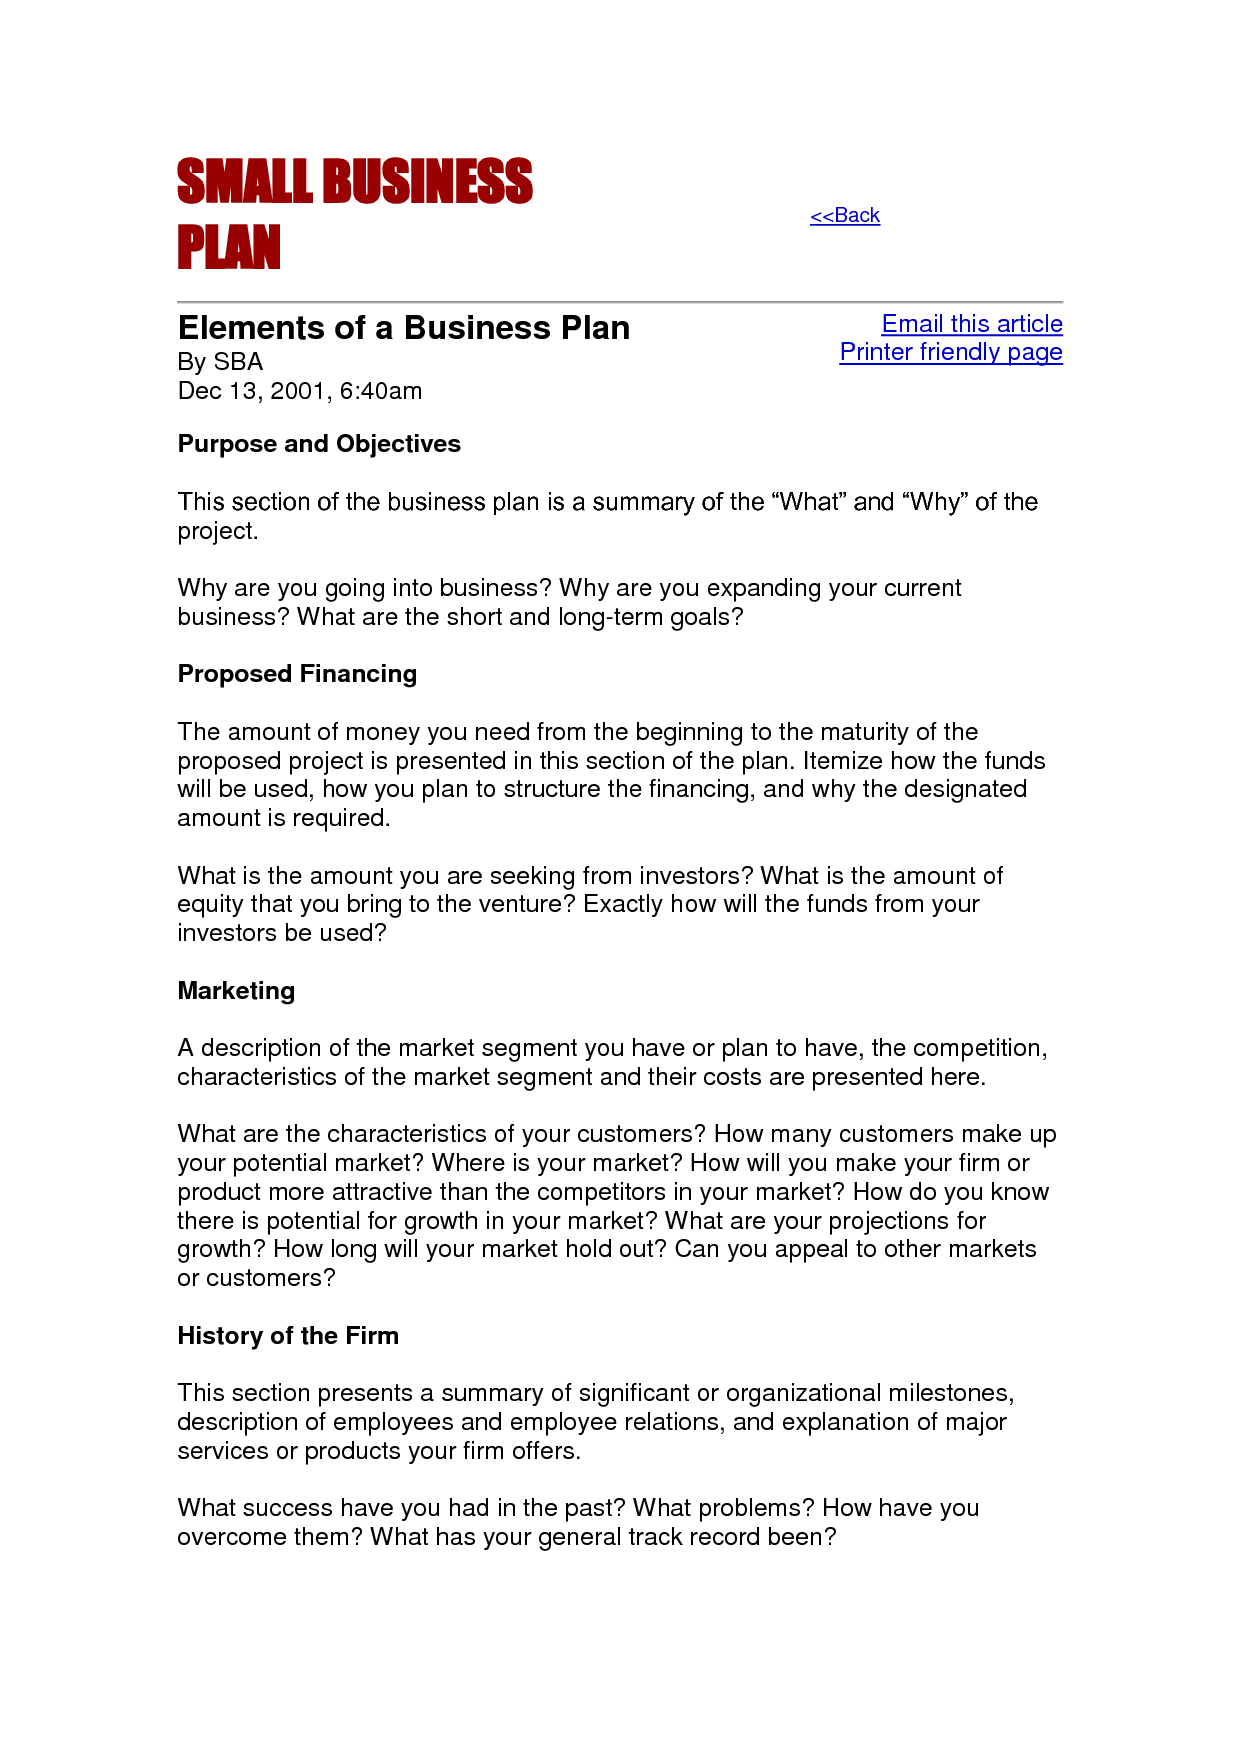 Small business proposal template building a stronger small small business proposal template building a stronger small business community at topgovernmentgrantssbdcp accmission Image collections